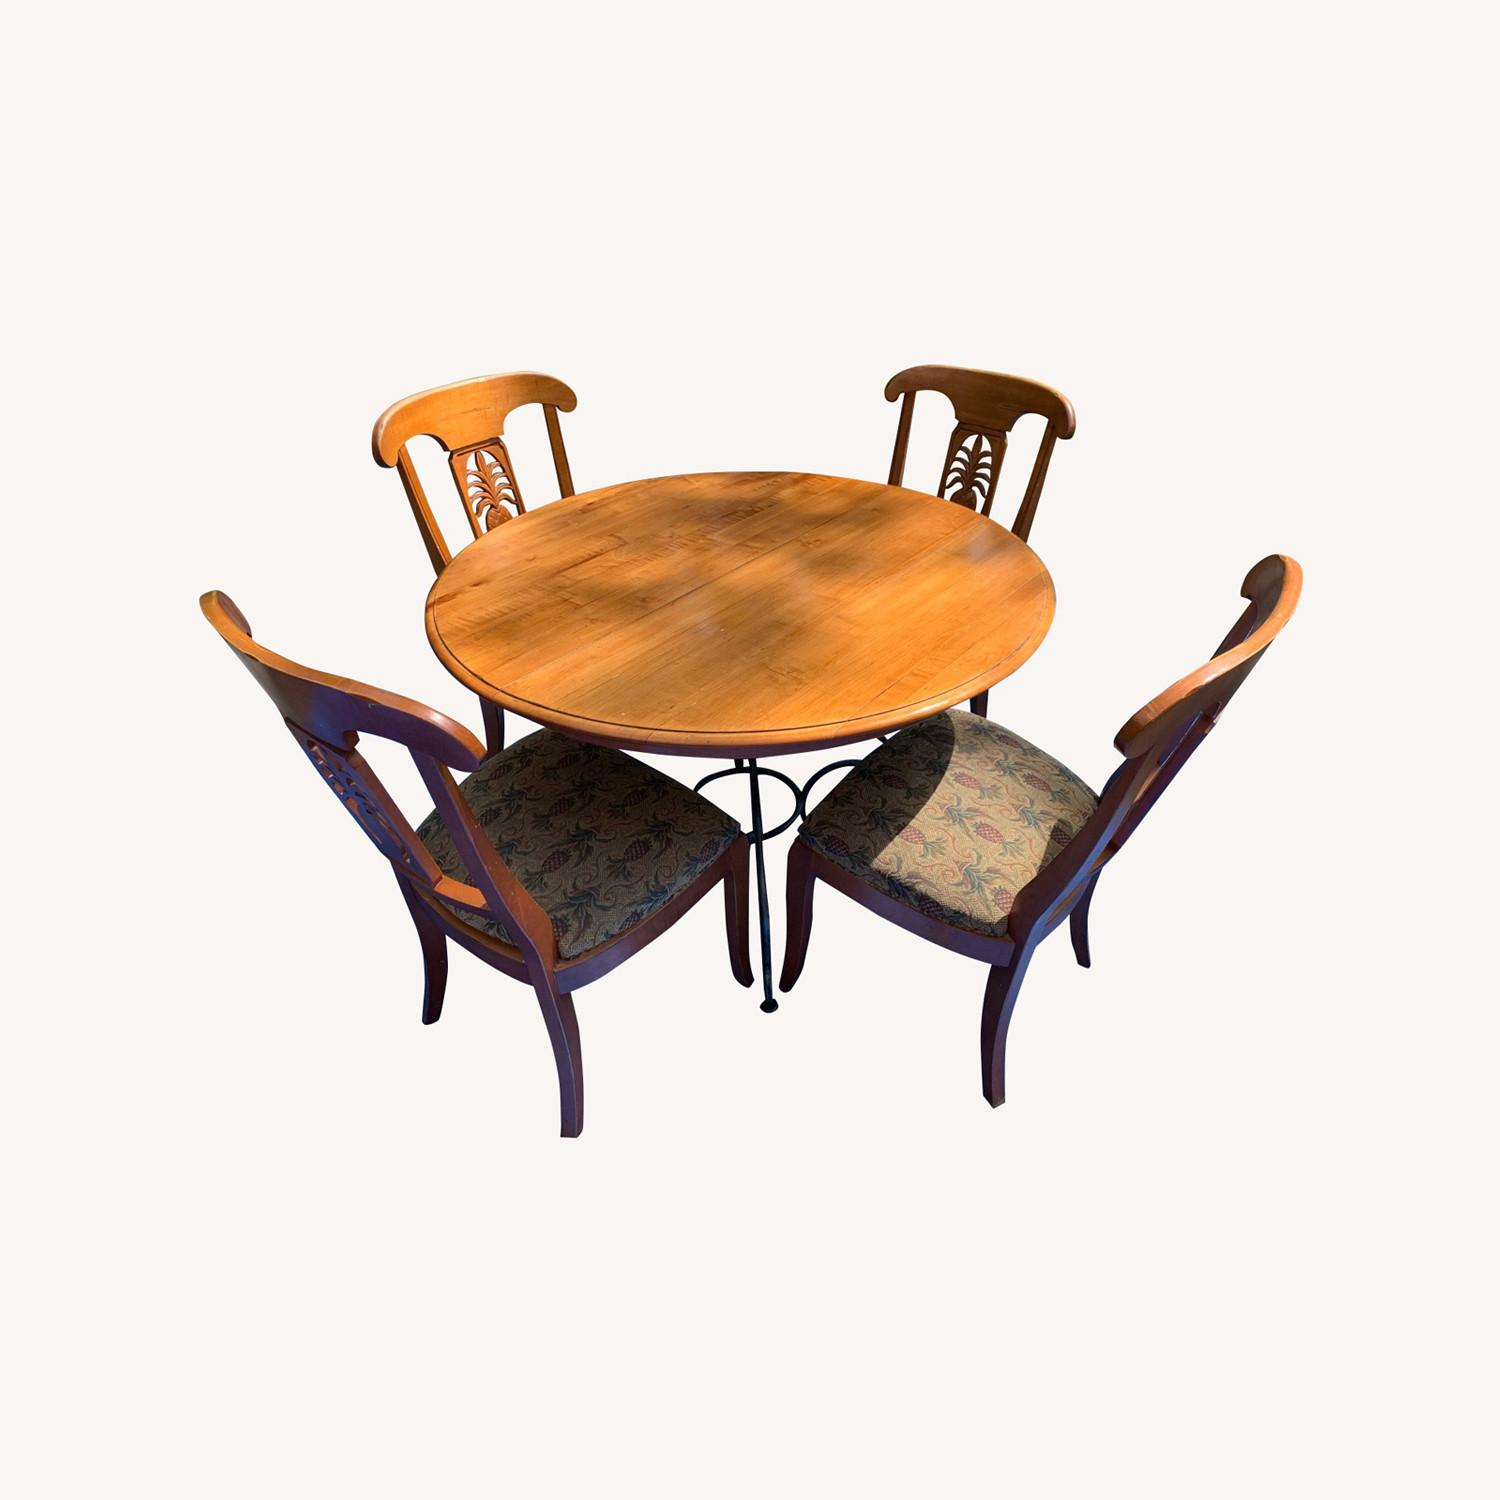 Ethan Allen Wood Dining Table with Leaf & 4 Chairs - image-5